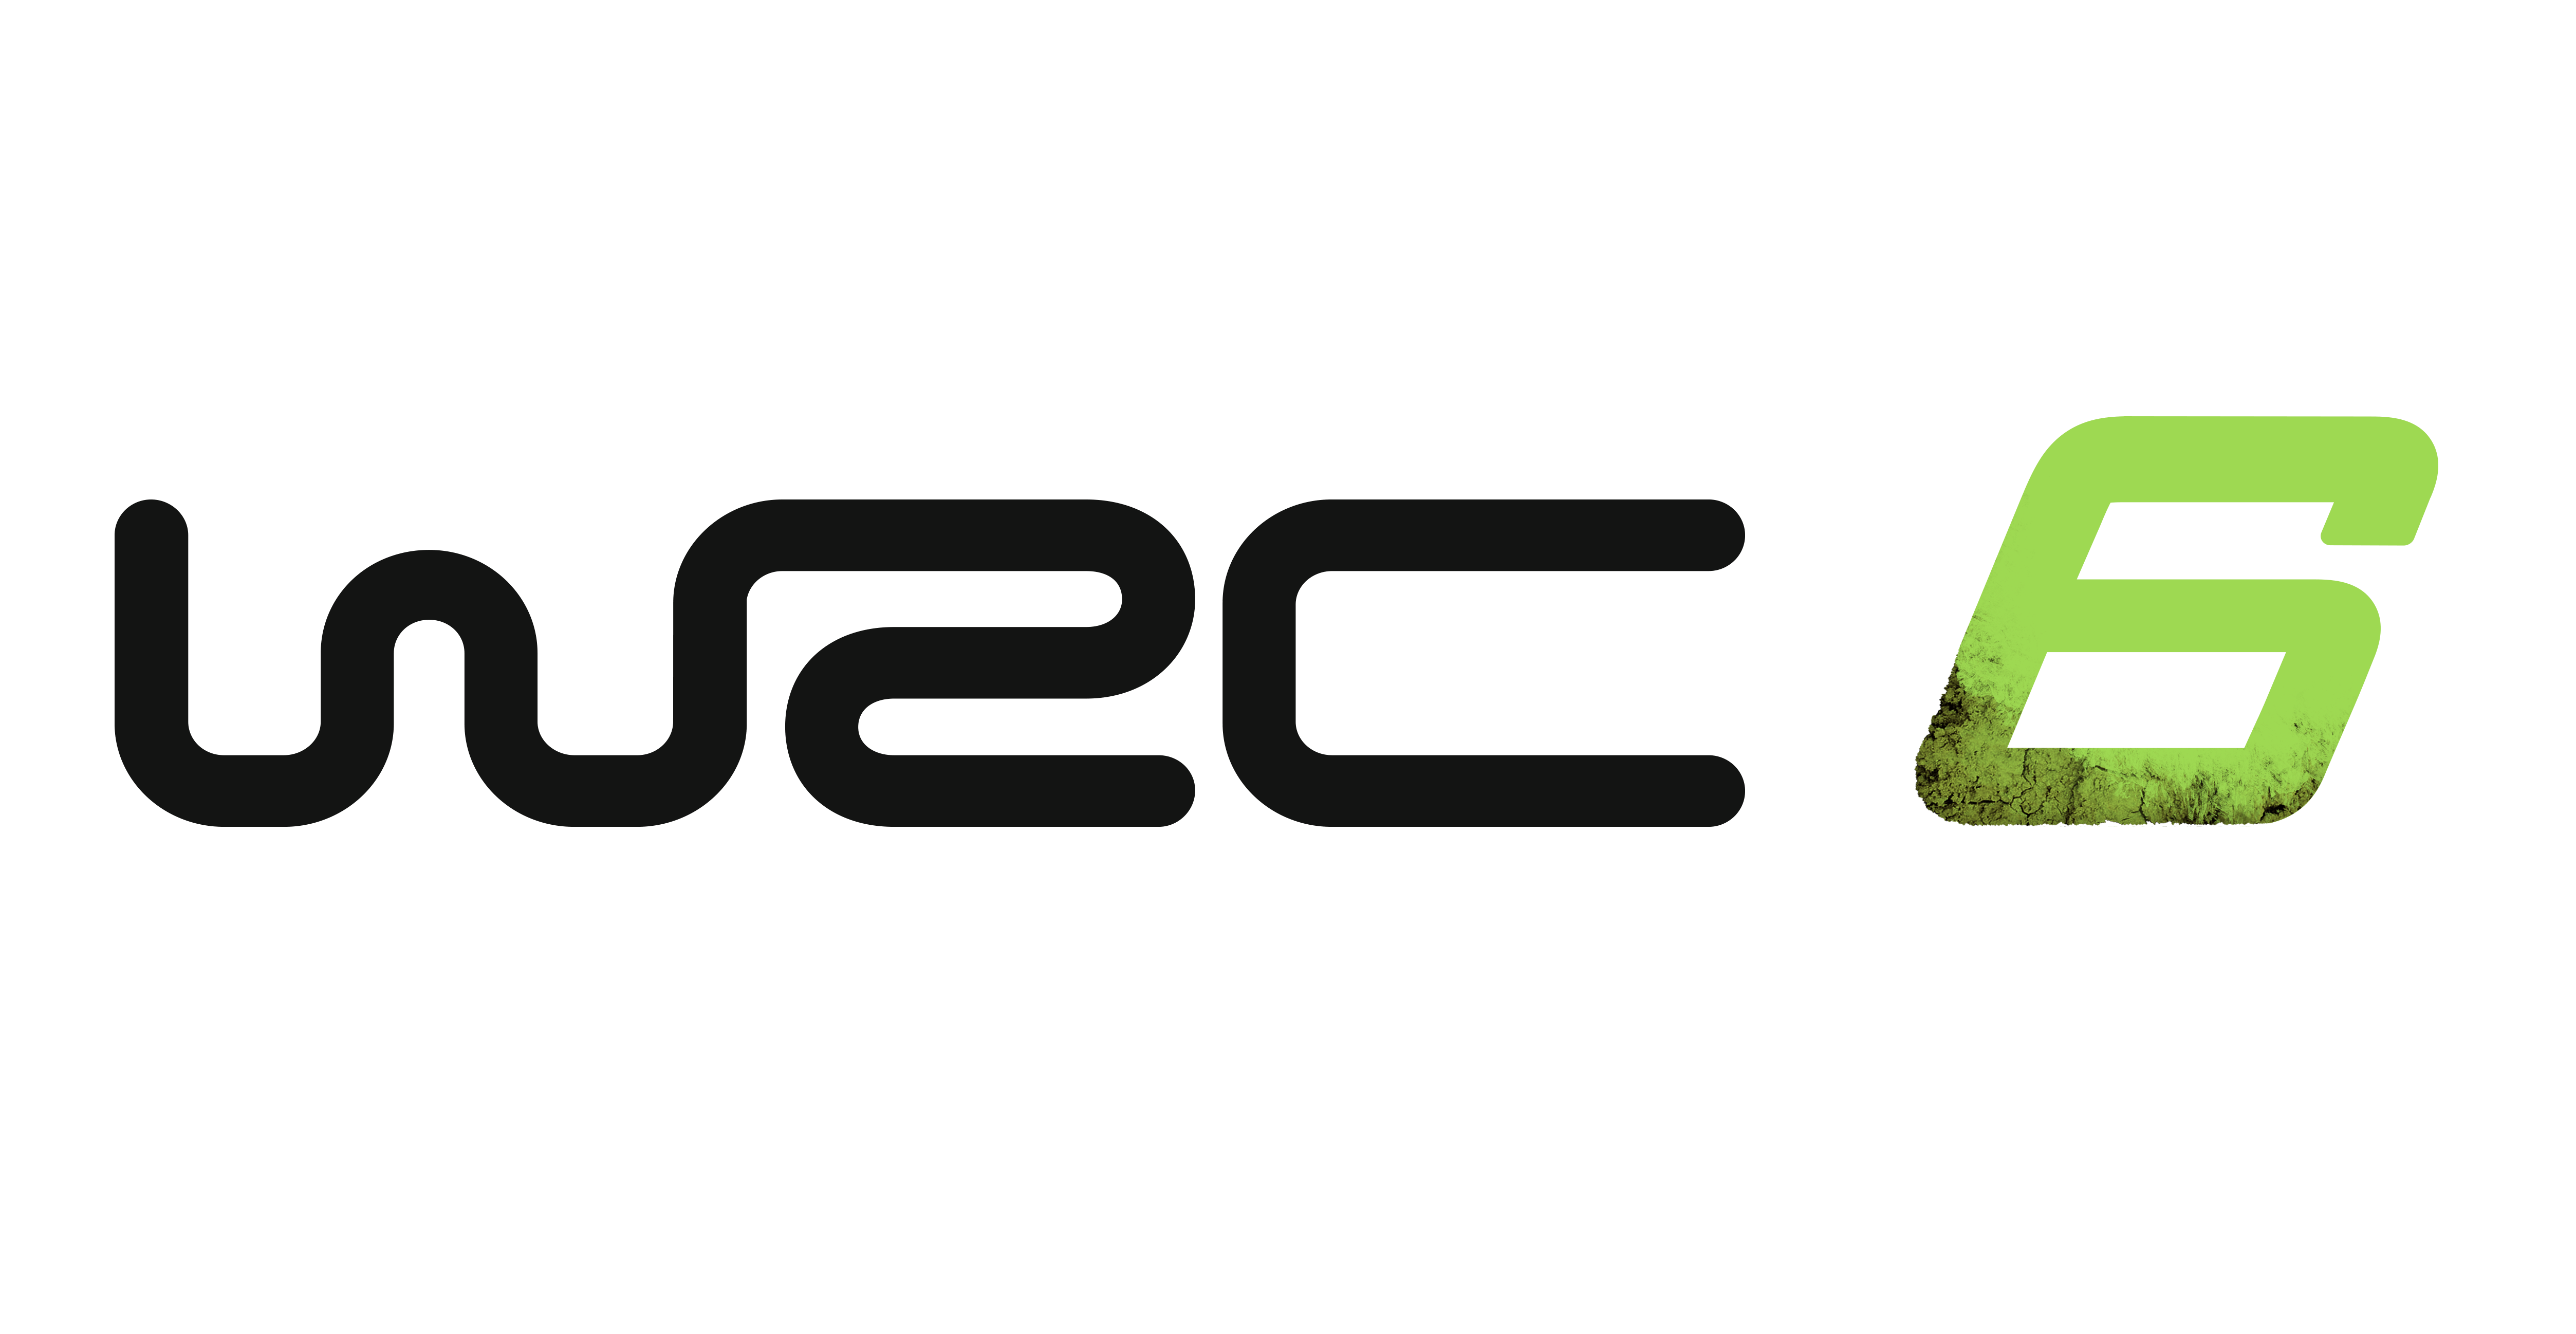 WRC 6 is Official 2016 Video Game of FIA World Rally Championship